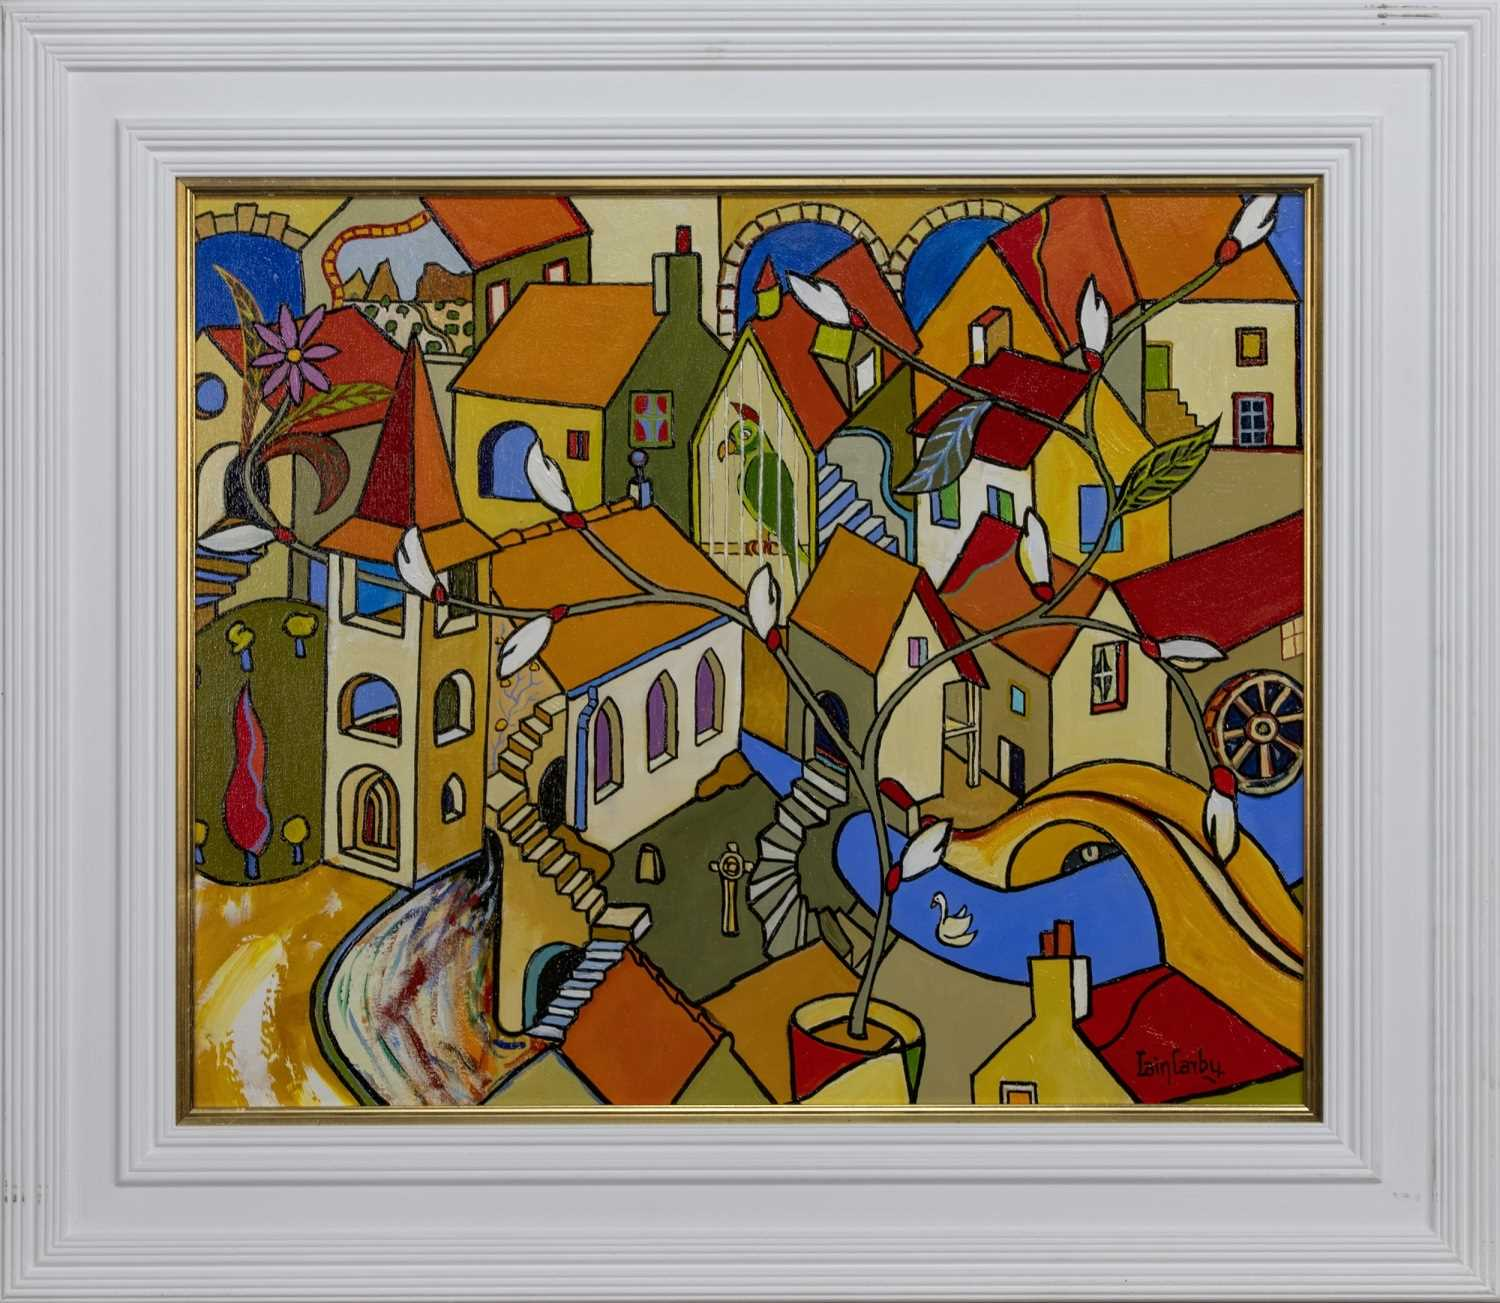 Lot 656 - THE CHURCH AND A PARROT, AN OIL BY IAIN CARBY